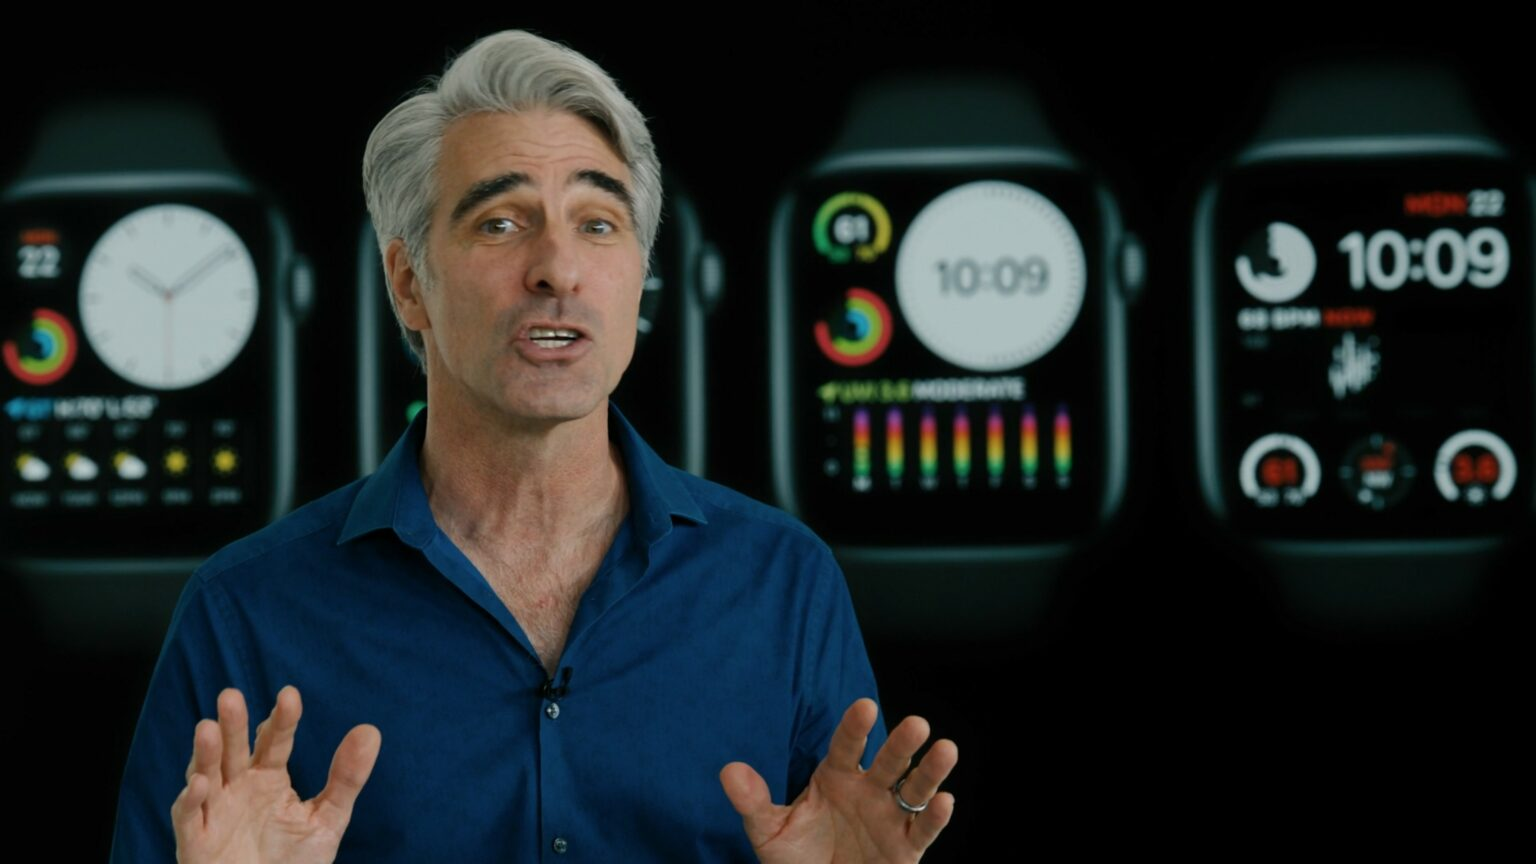 Craig Federighi talks about WWDC 2020, the first virtual Worldwide Developers Conference.